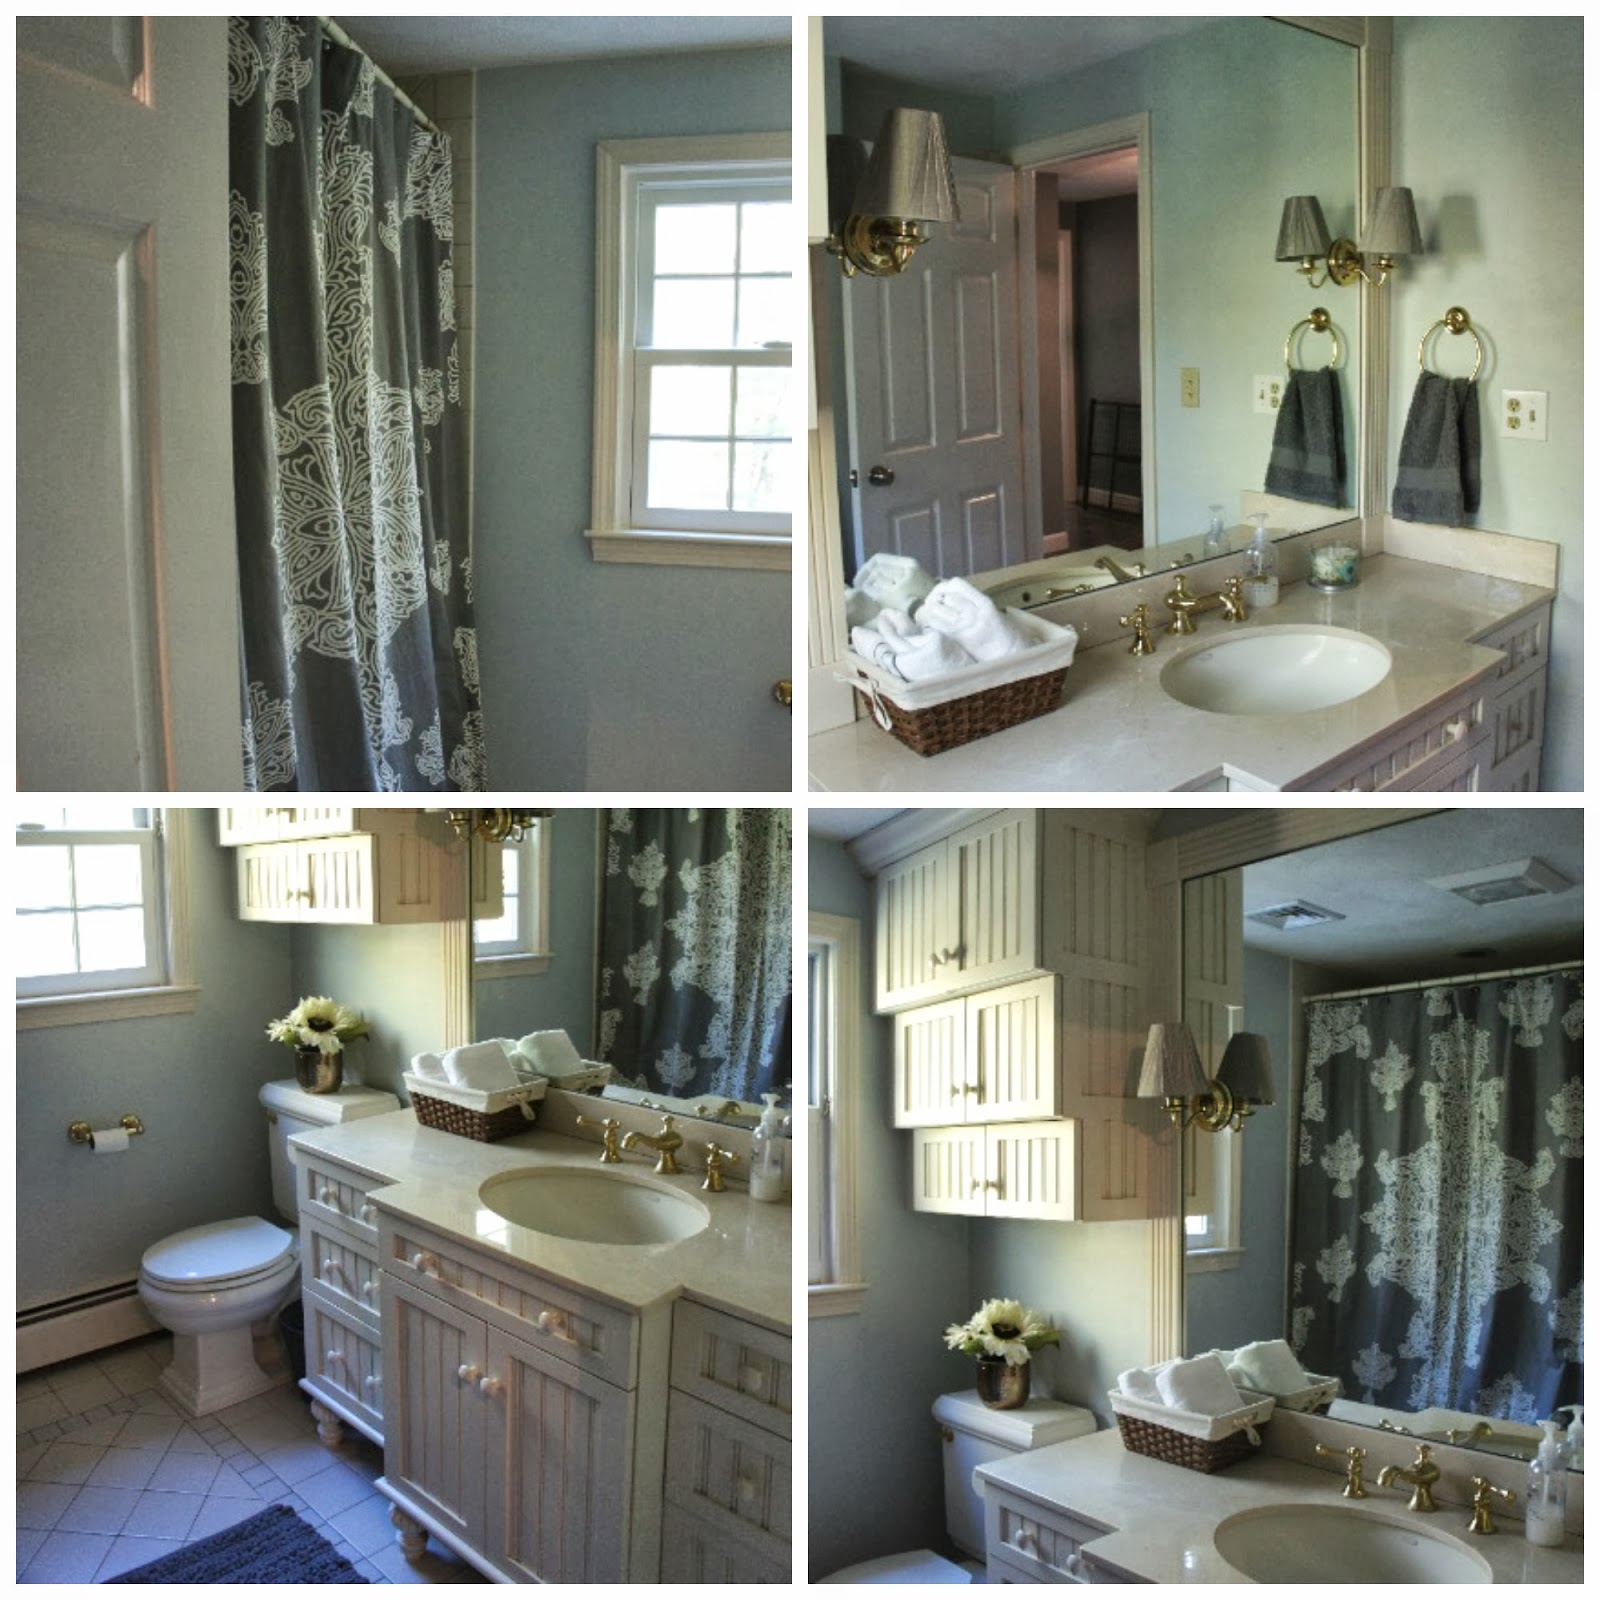 Download Image Bathroom Shower Curtains And Matching Accessories PC 1600x1600